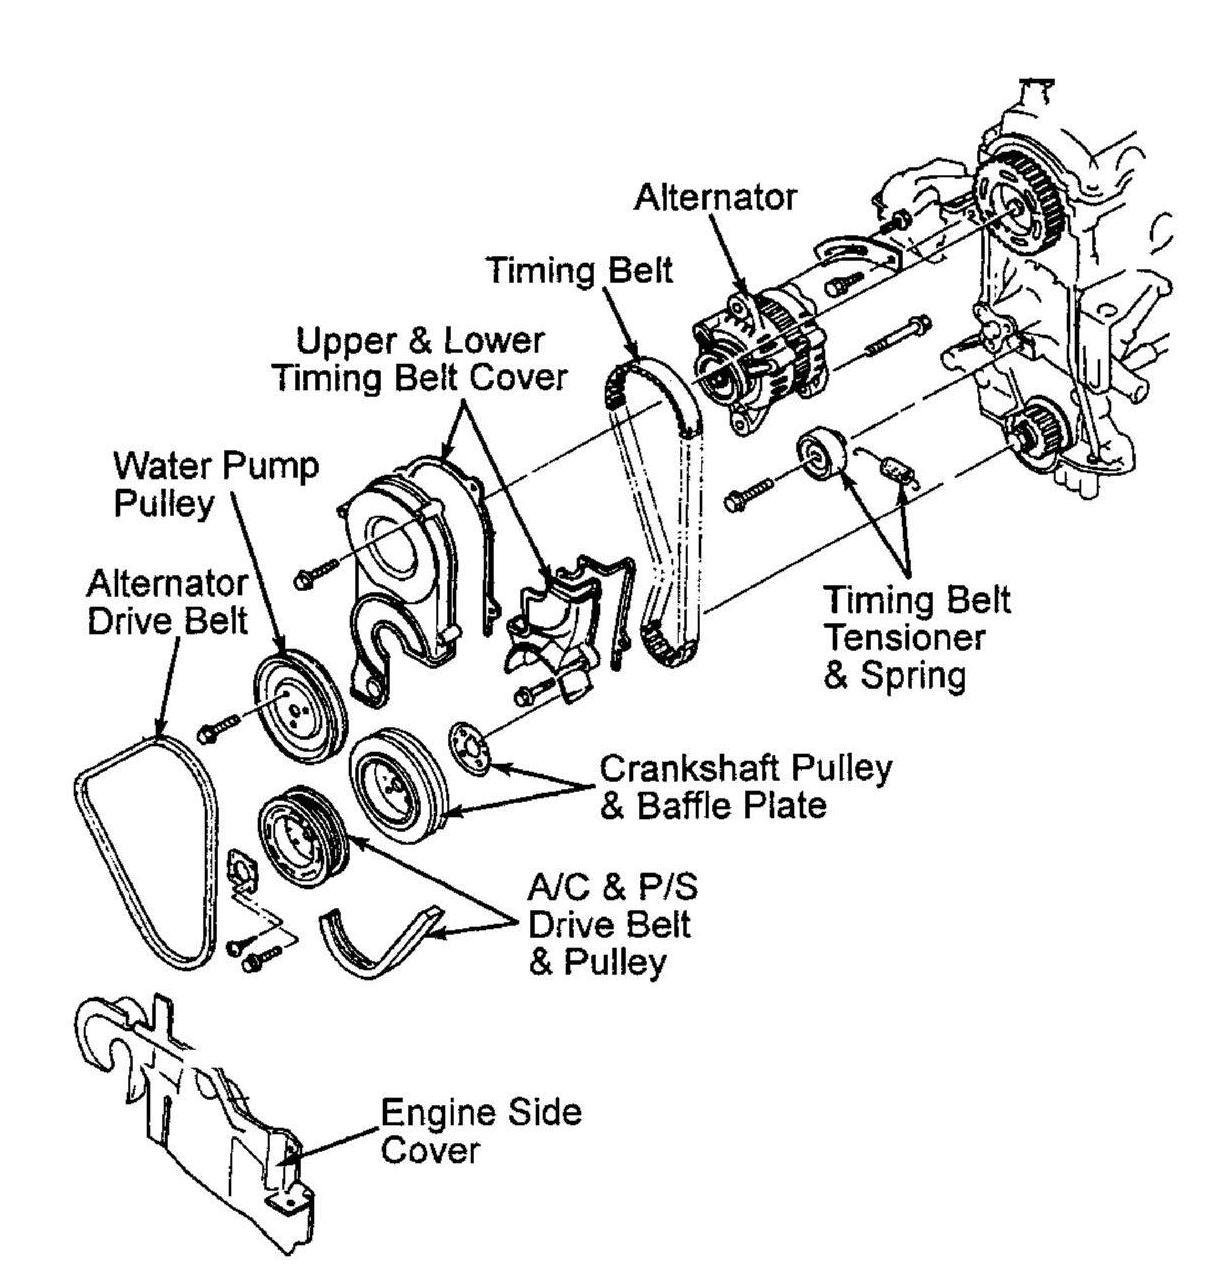 mazda 92 929 engine diagram  mazda  auto wiring diagram